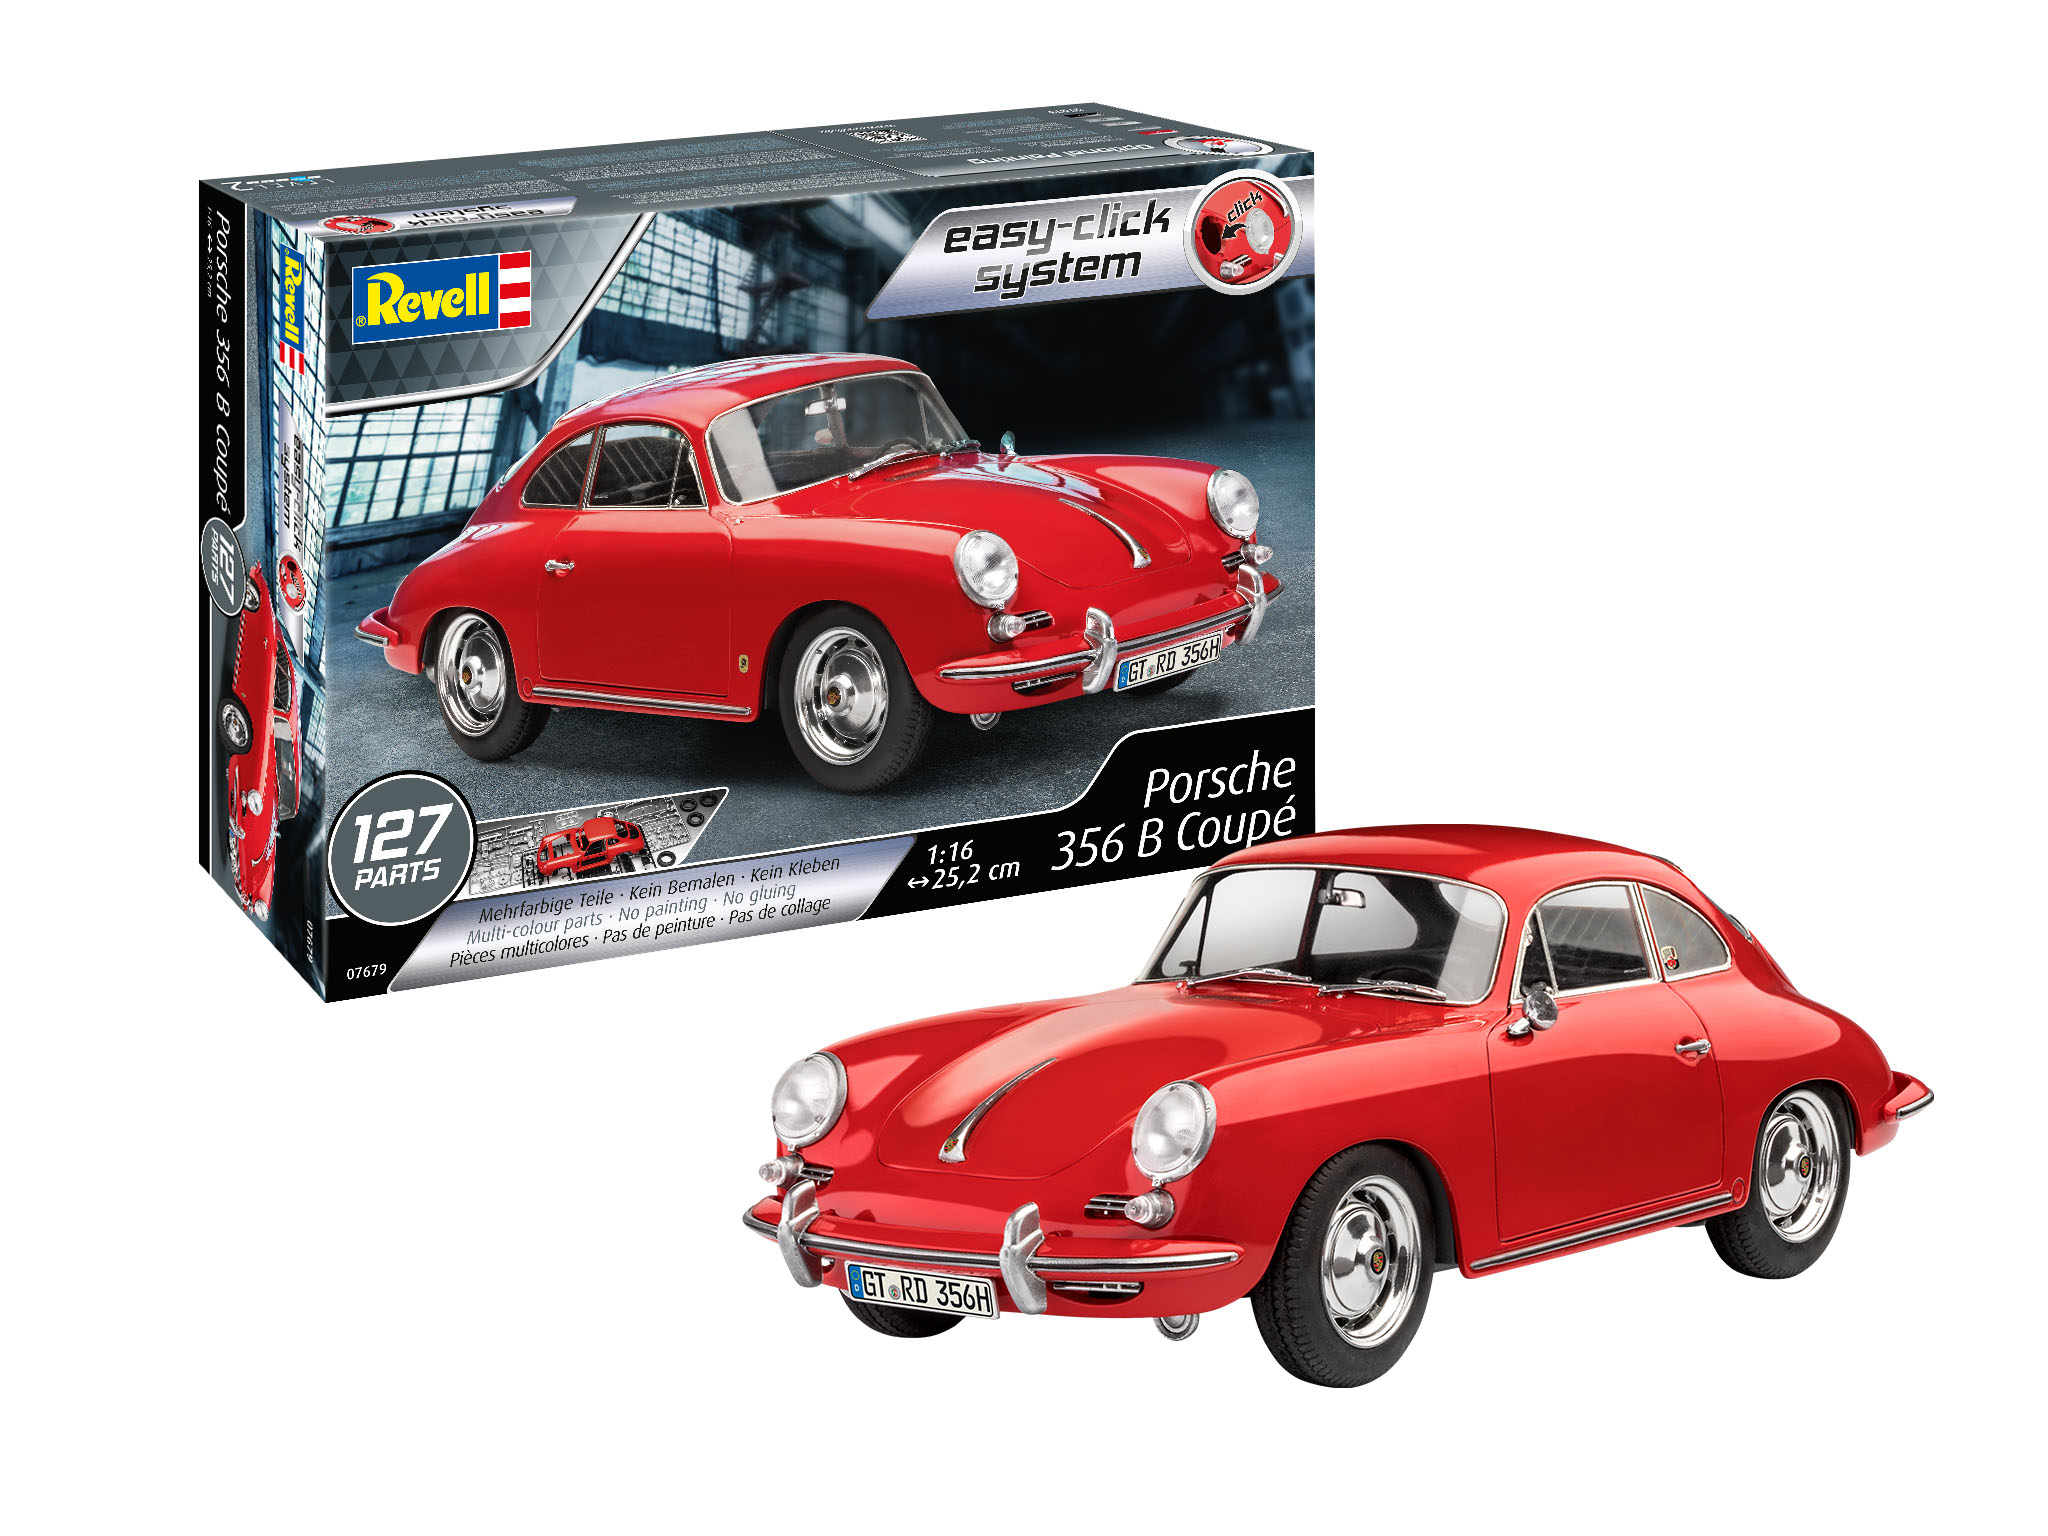 Porsche 356 B Coupe 1:16 Scale Easy Click System